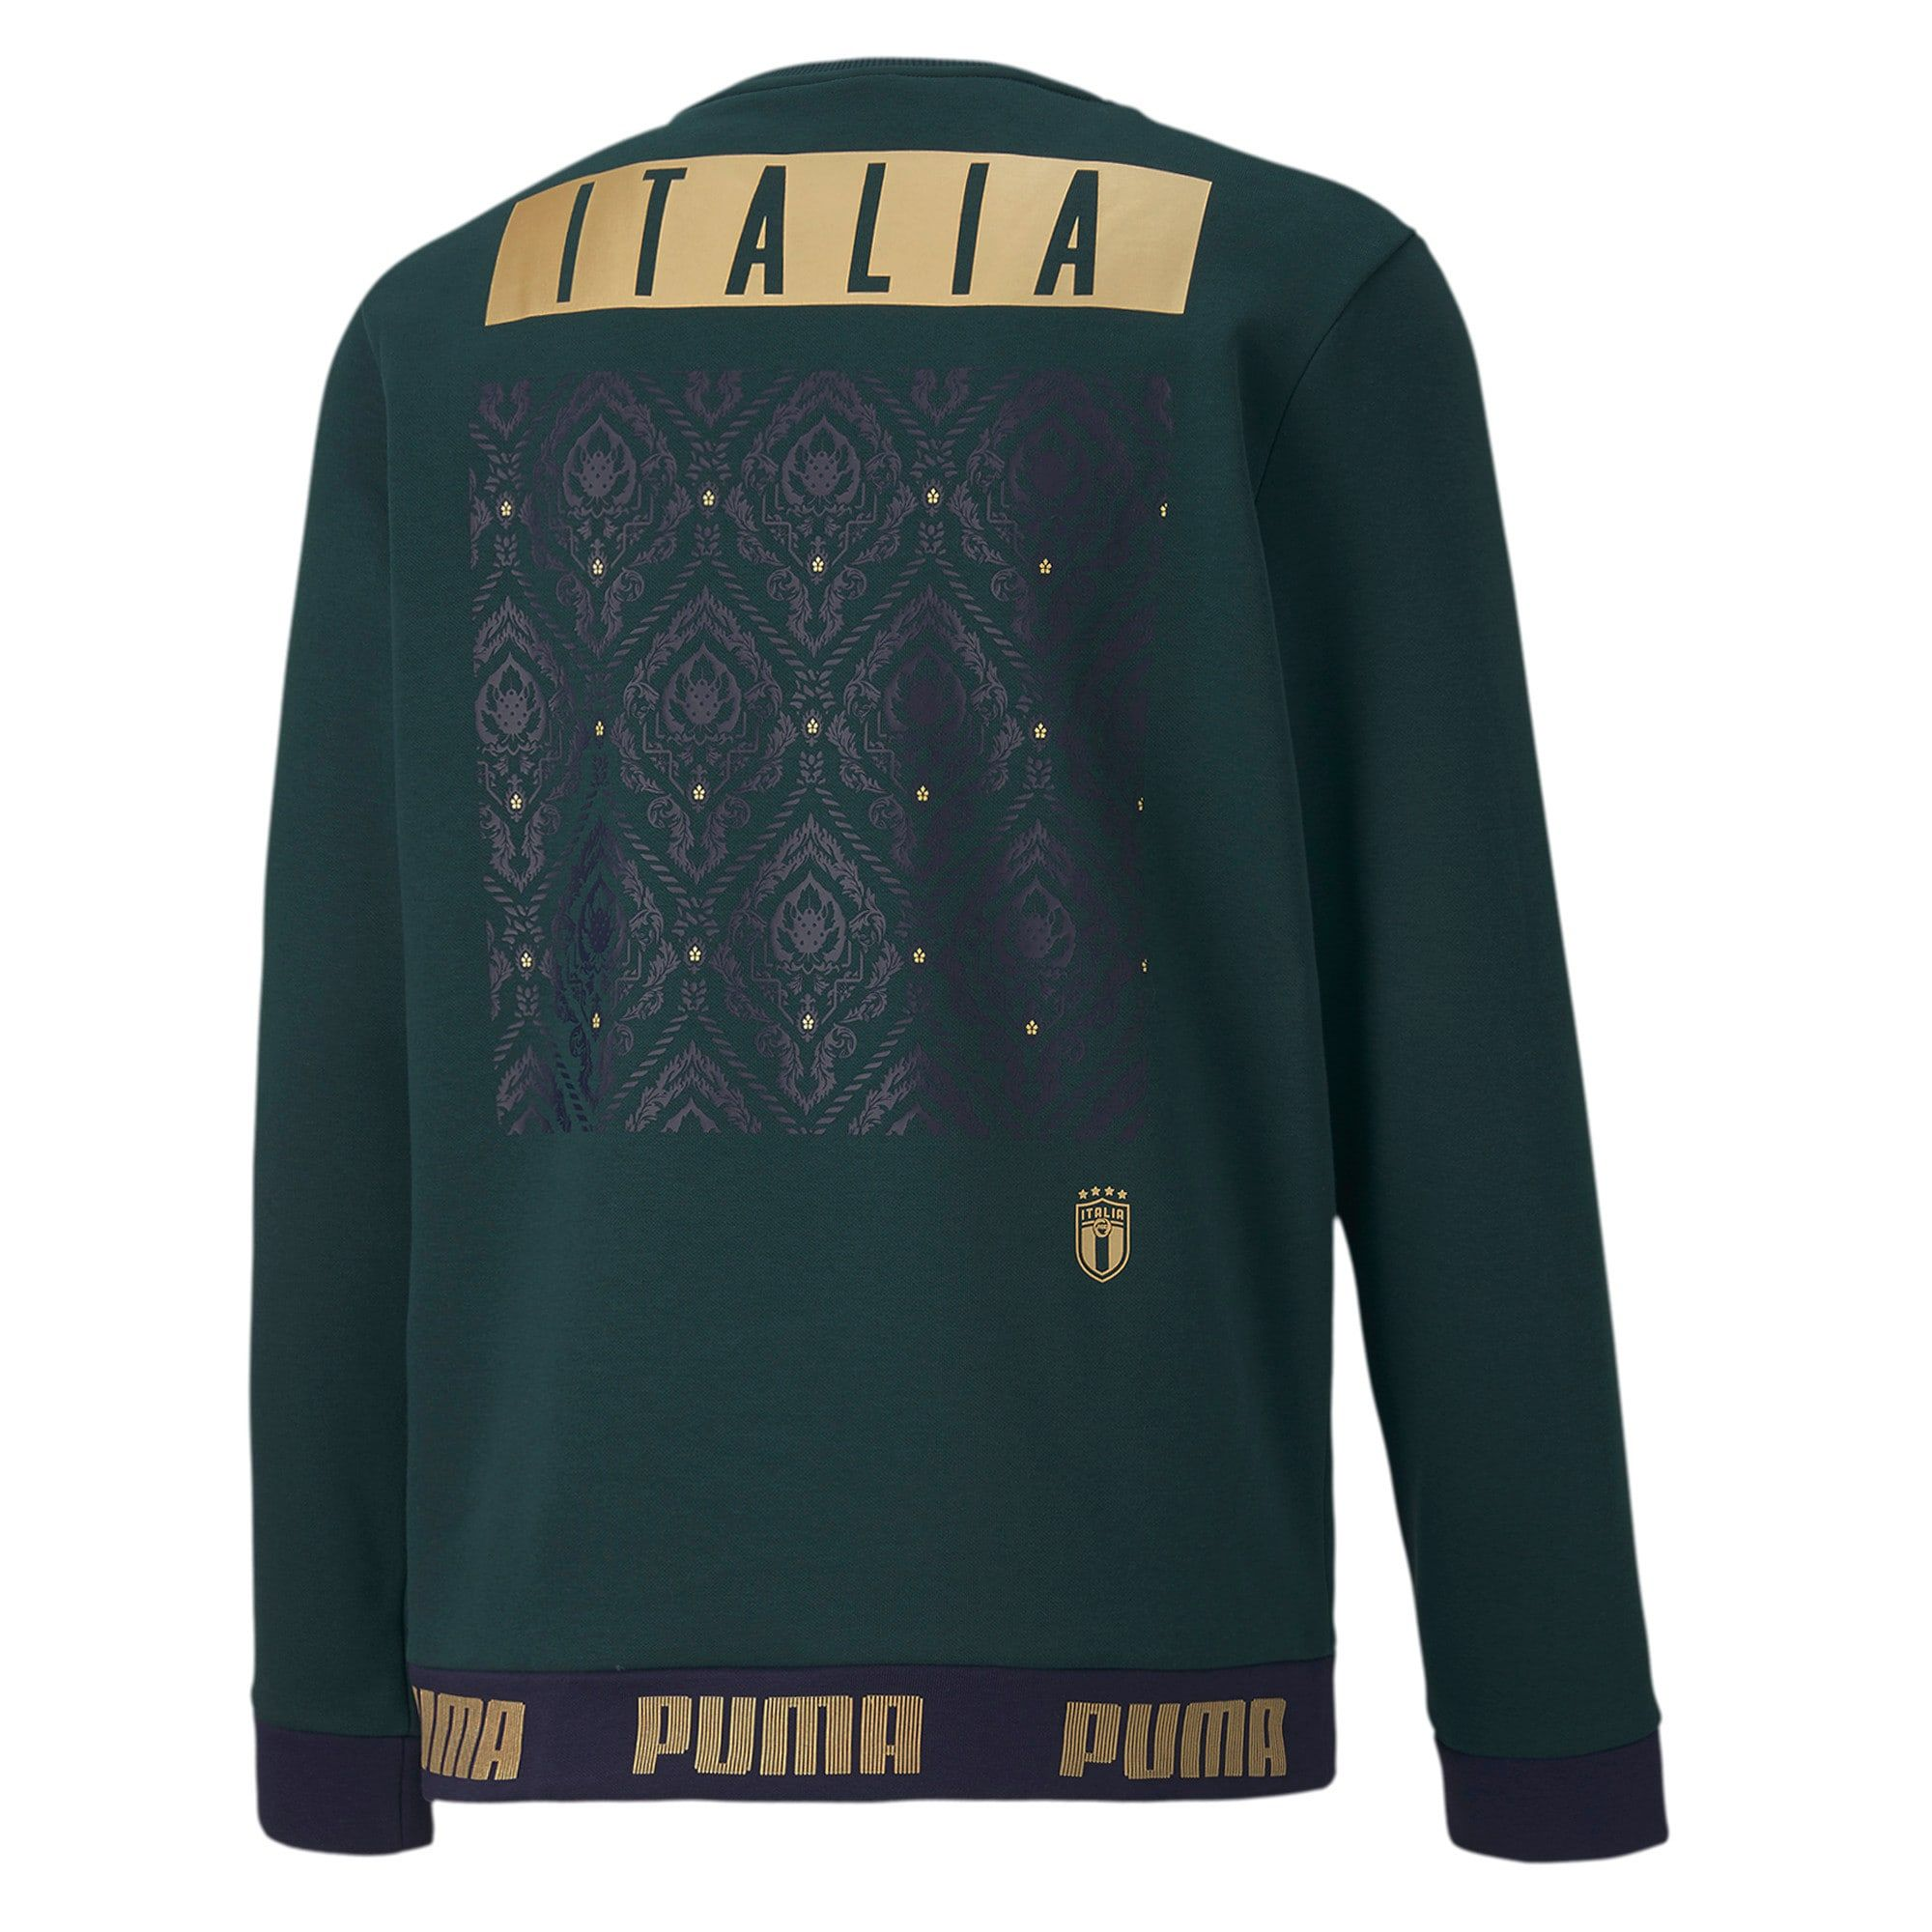 Sweatshirt Italia Football Culture pour homme in 2019 | Puma